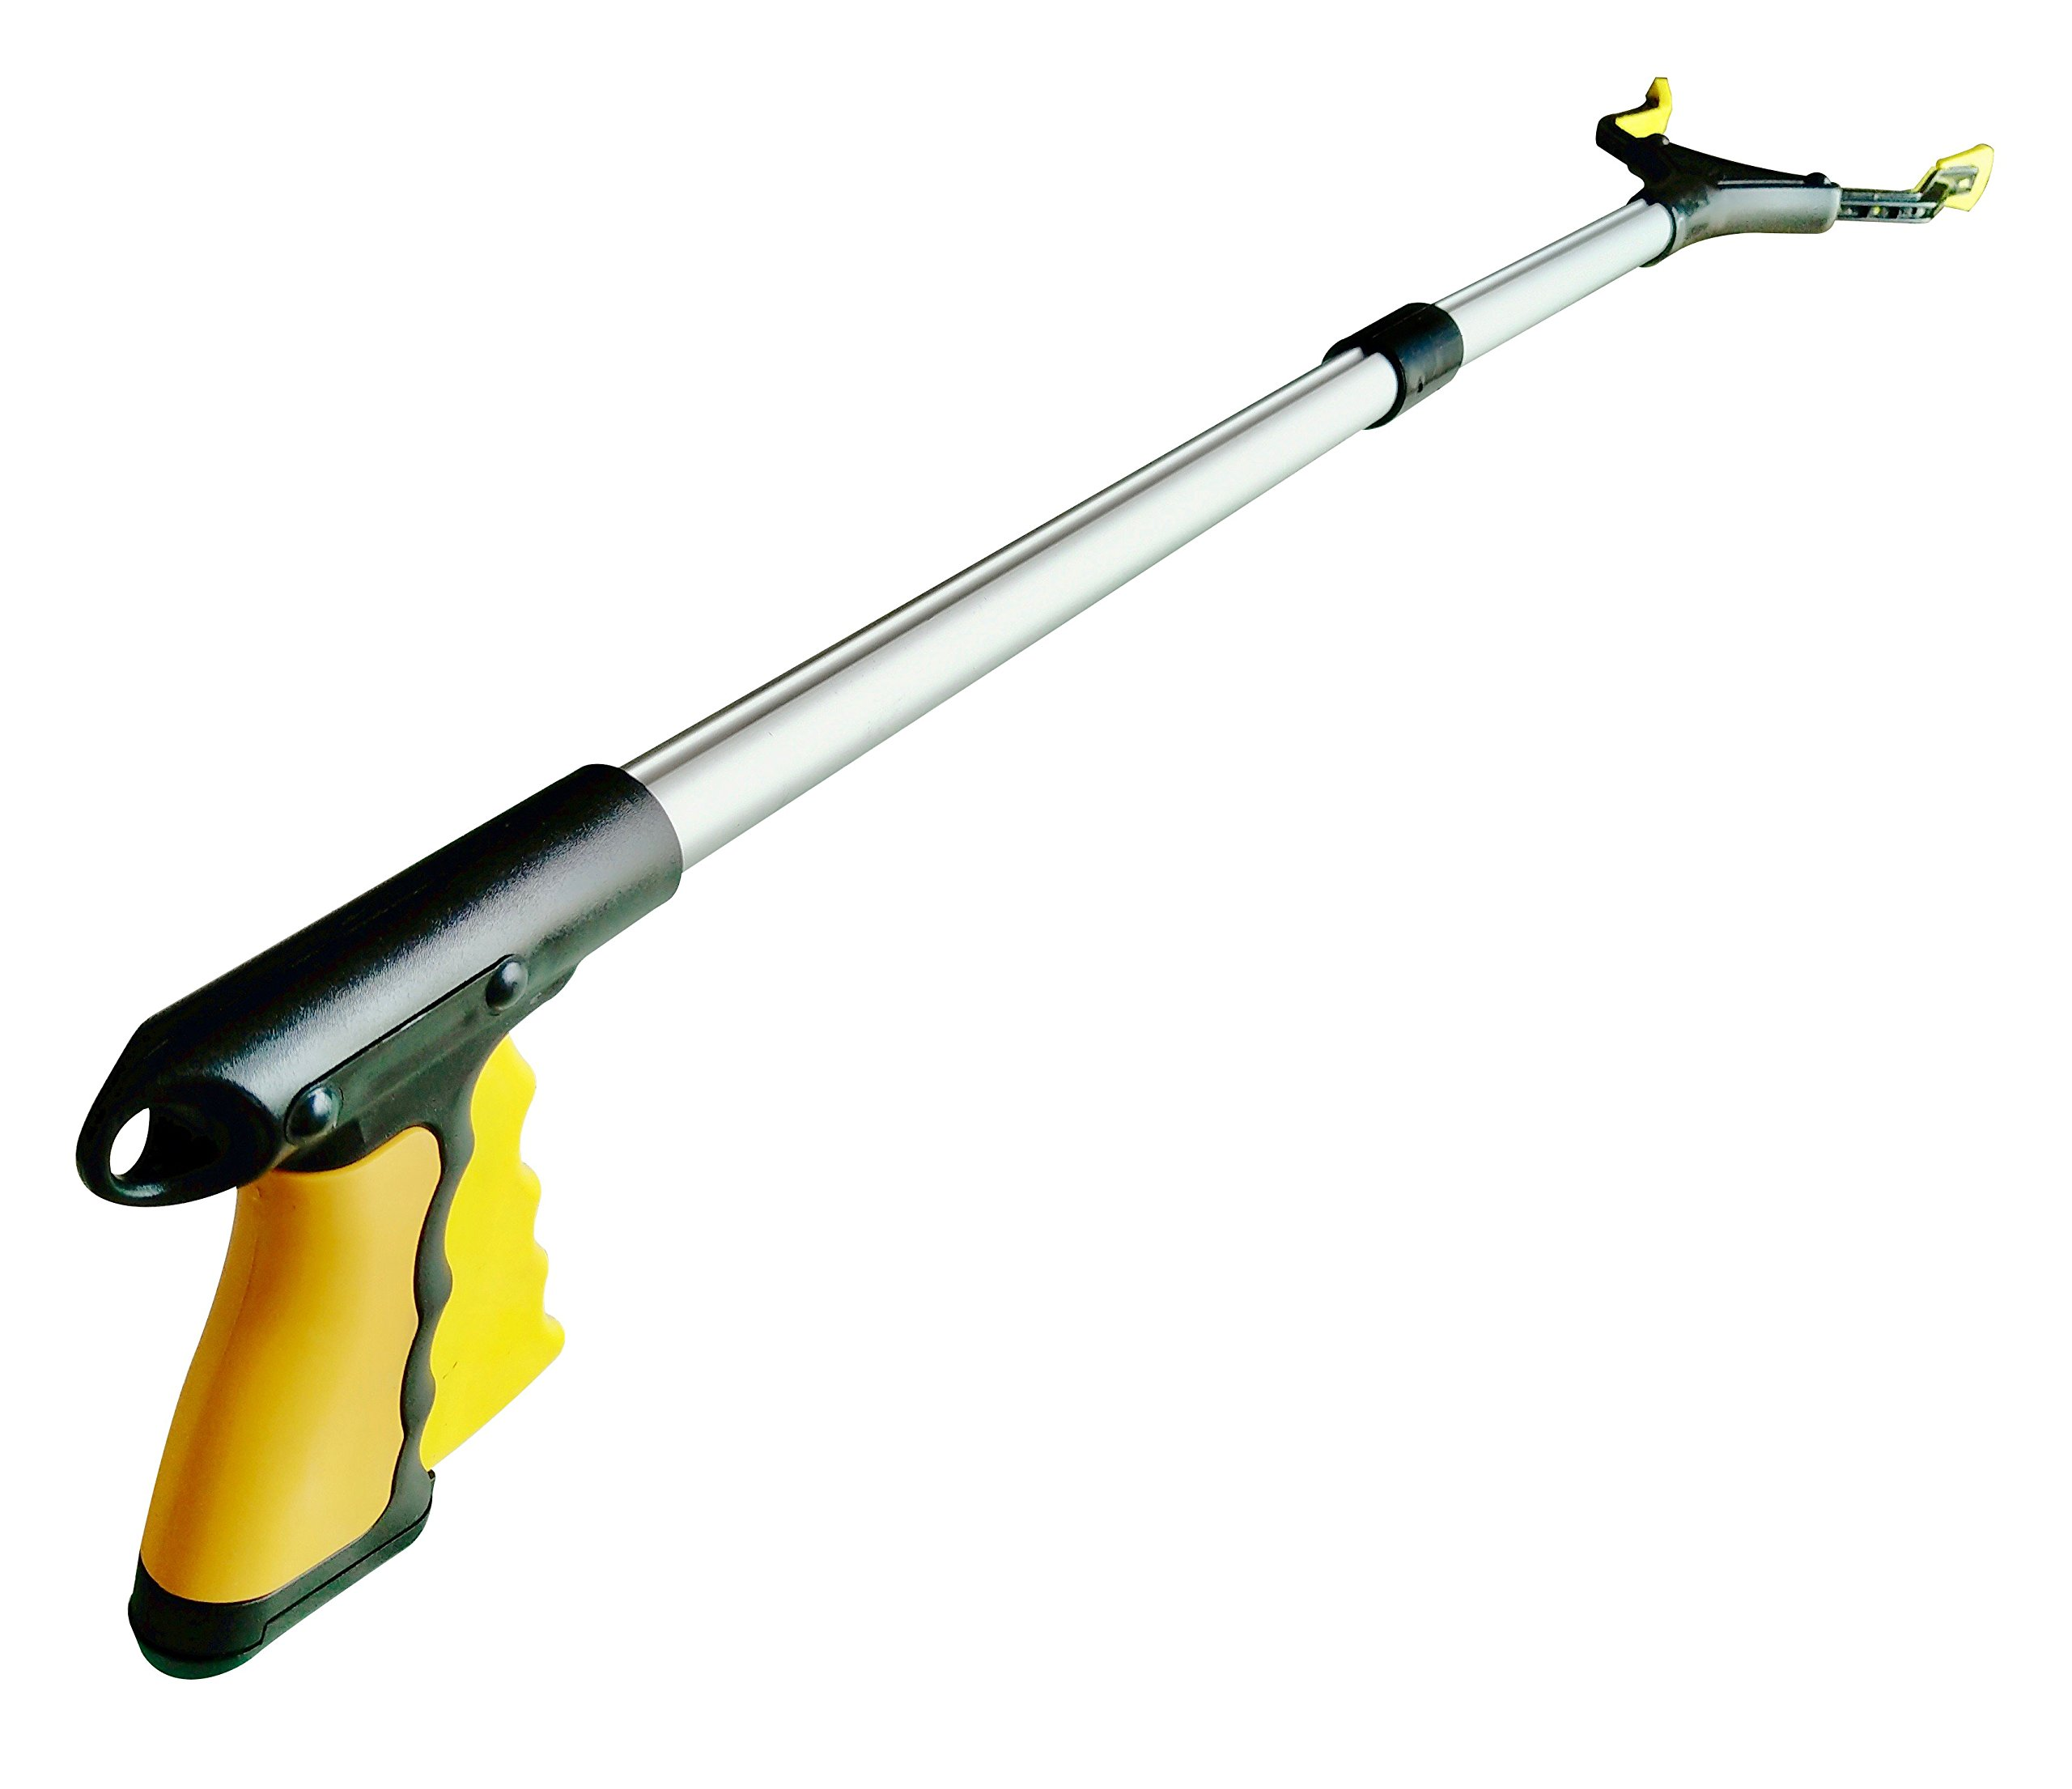 "Large Handle Reacher Grabber with Rotating Grip by ThingWx - 32"" Long Foldable Aluminum Alloy Lightweight and Durable Reaching Aid Tool - Bright Yellow Color"